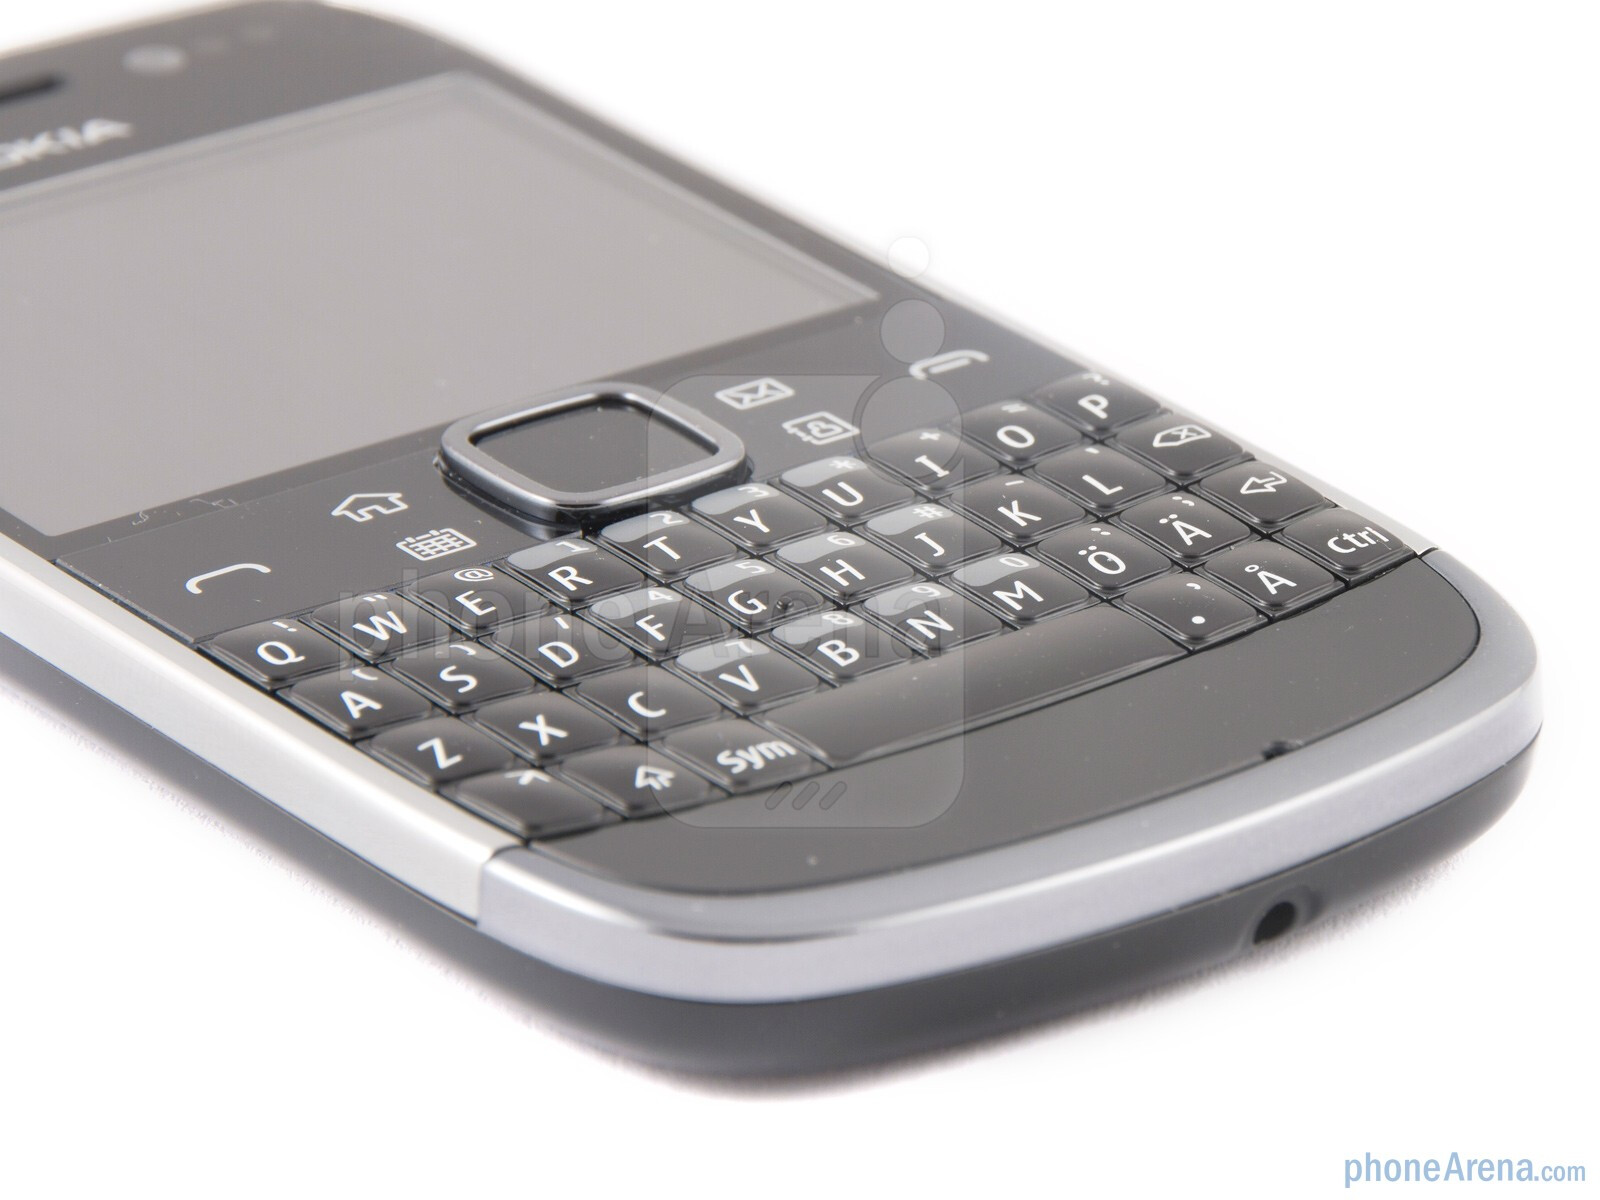 Camera Android Phone With Qwerty Keypad keypad 3g mobile phones images guru nokia e review design